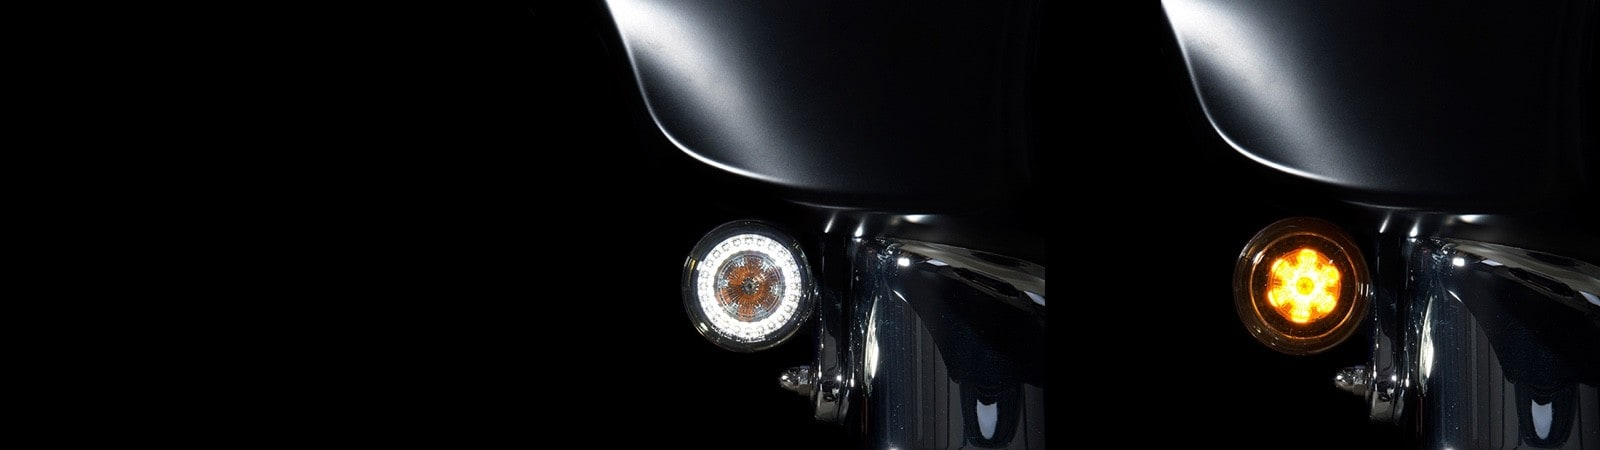 ProBEAM Motorcycle LED Turn Signals